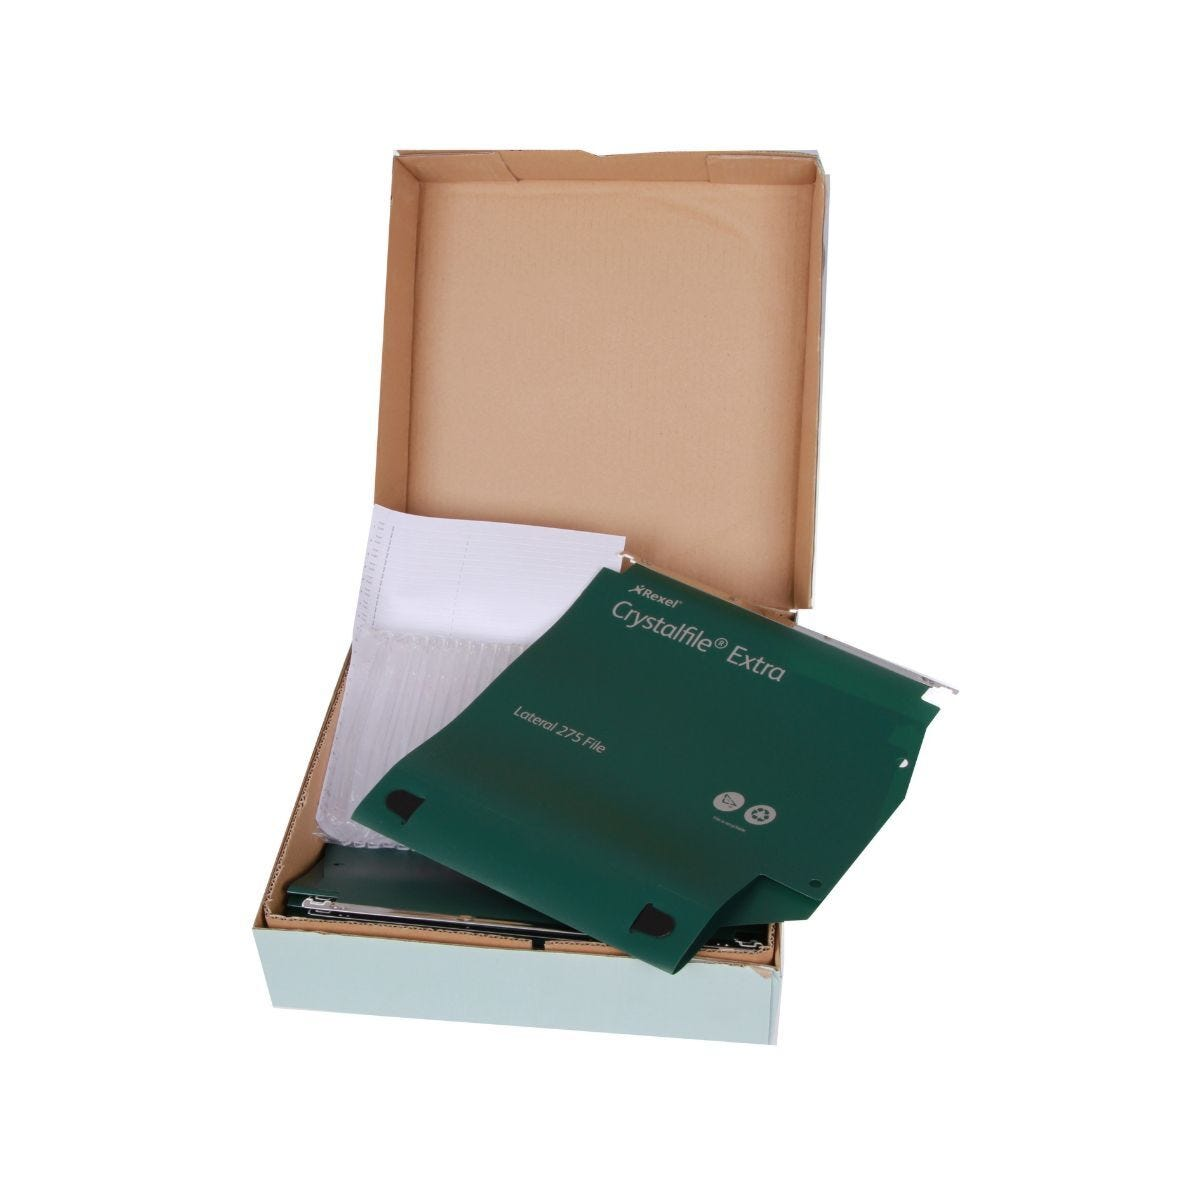 Crystalfile 275 Lateral File 50mm/ 500 Sheets Pack of 25